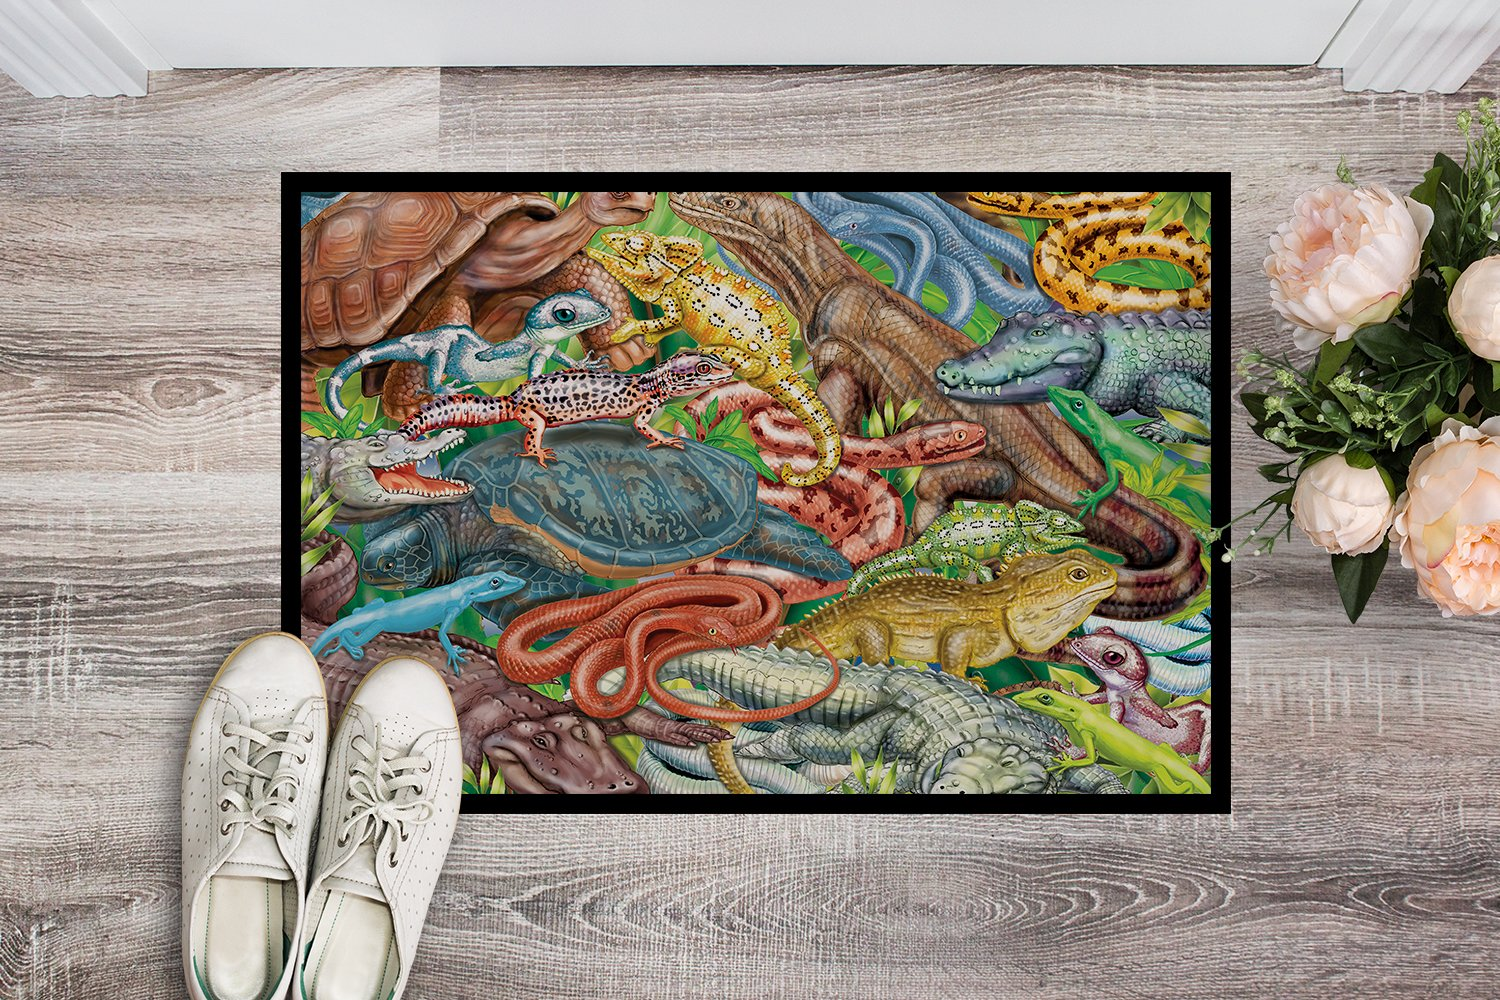 Scales and Tails, Snakes, Turtle, Reptiles Indoor or Outdoor Mat 24x36 PRS4034JMAT by Caroline's Treasures